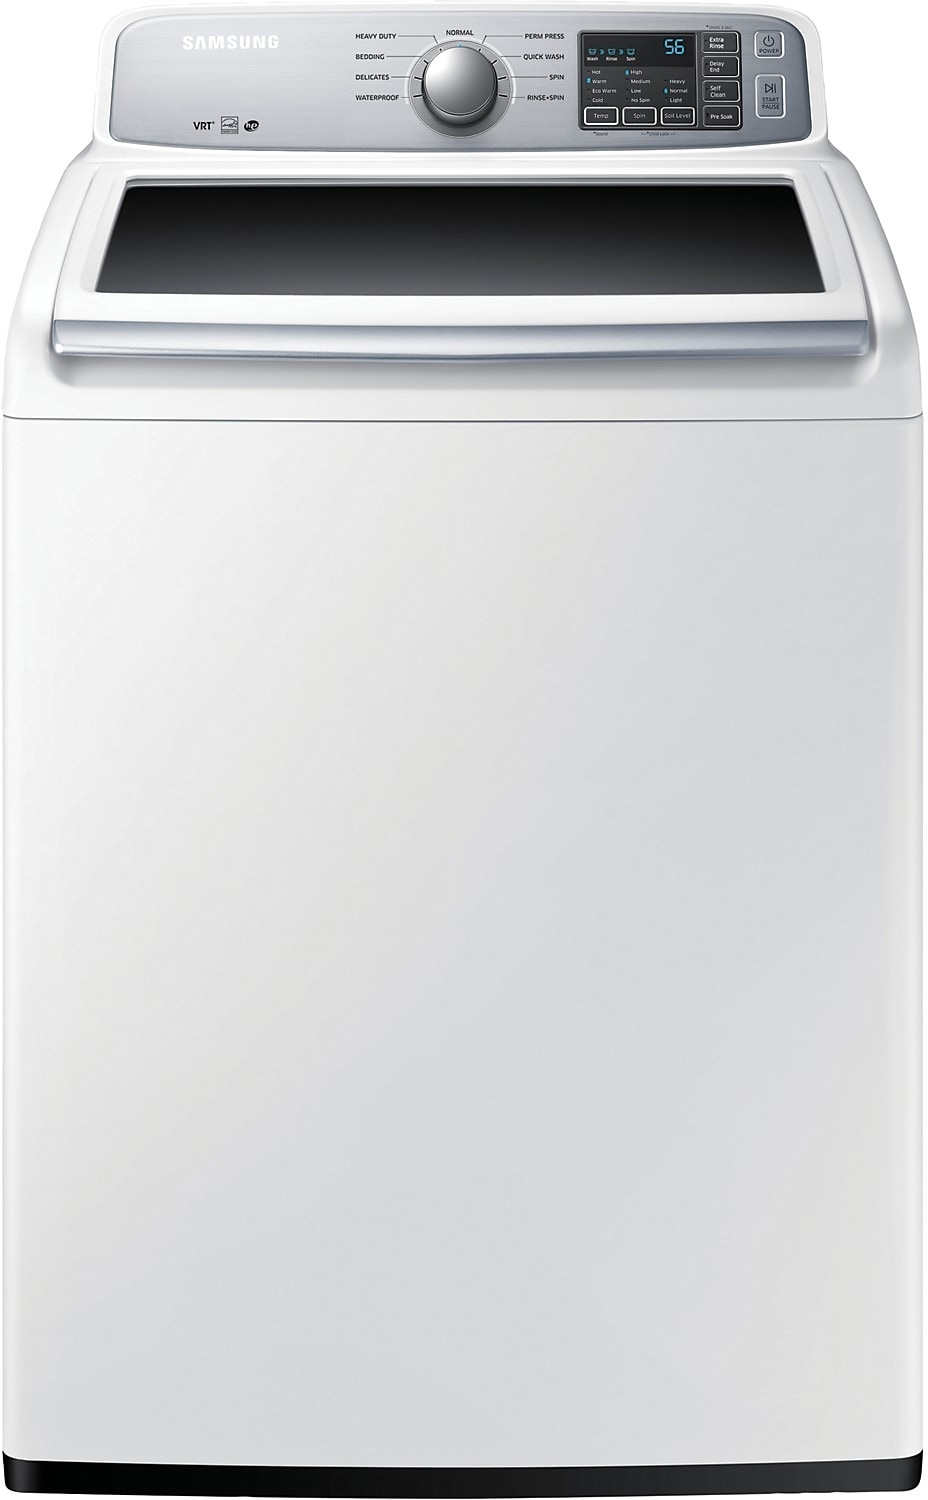 Washers and Dryers - Samsung 5.2 Cu. Ft.  Large Capacity Top-Load Washer - White